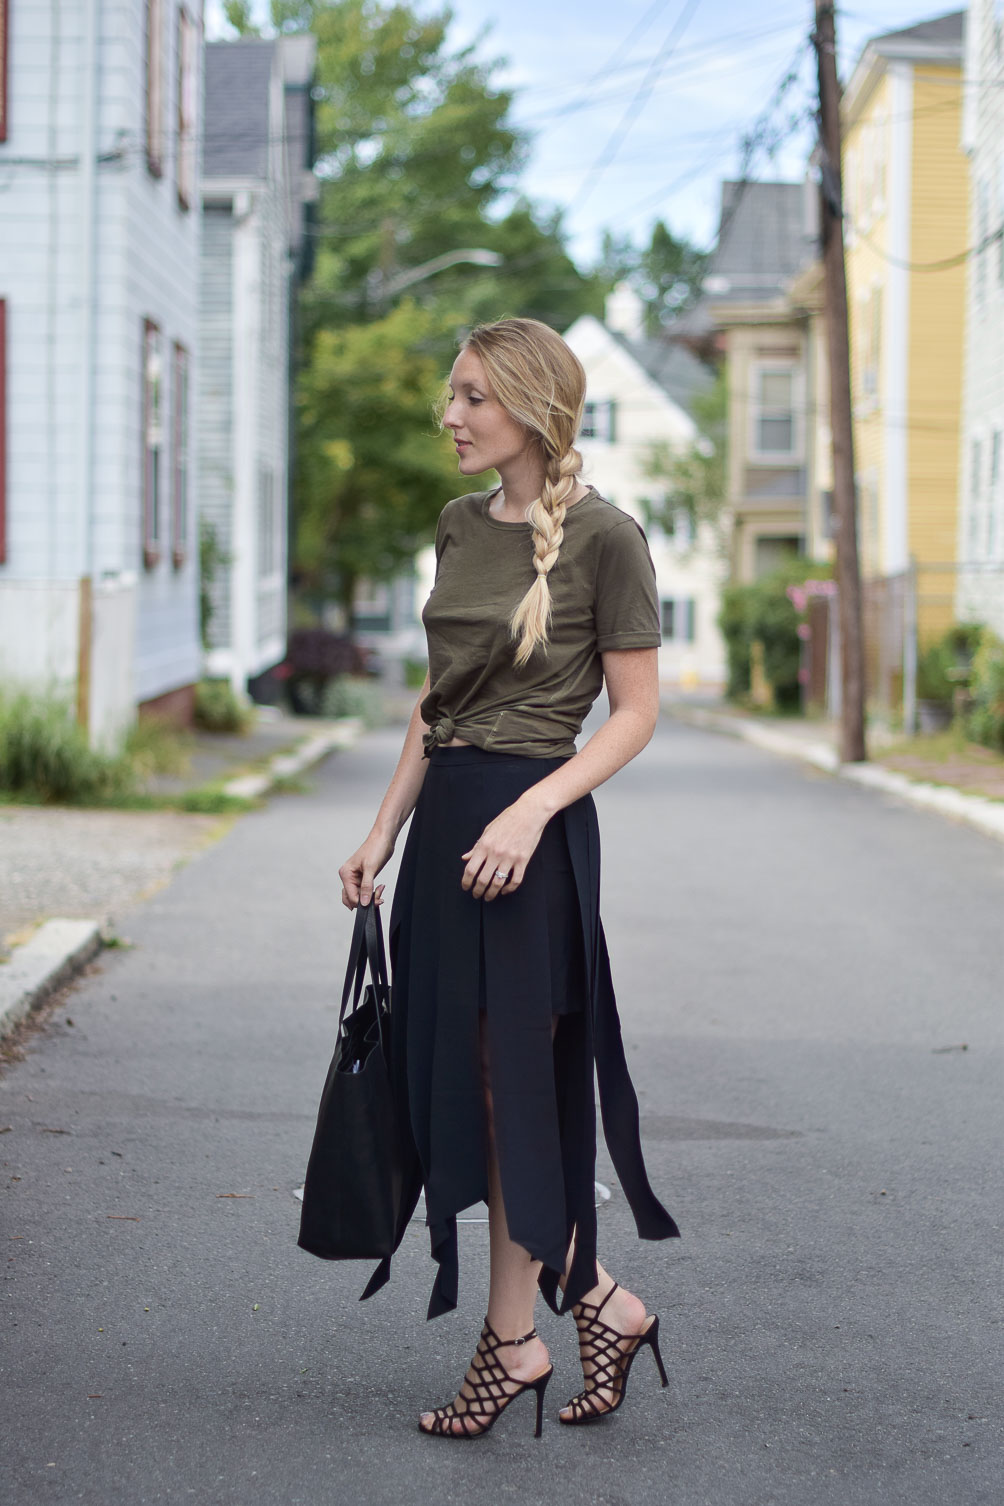 minimalist fall outfit inspiration with a vintage wash tee, carwash midi skirt, and cage sandals on one brass fox